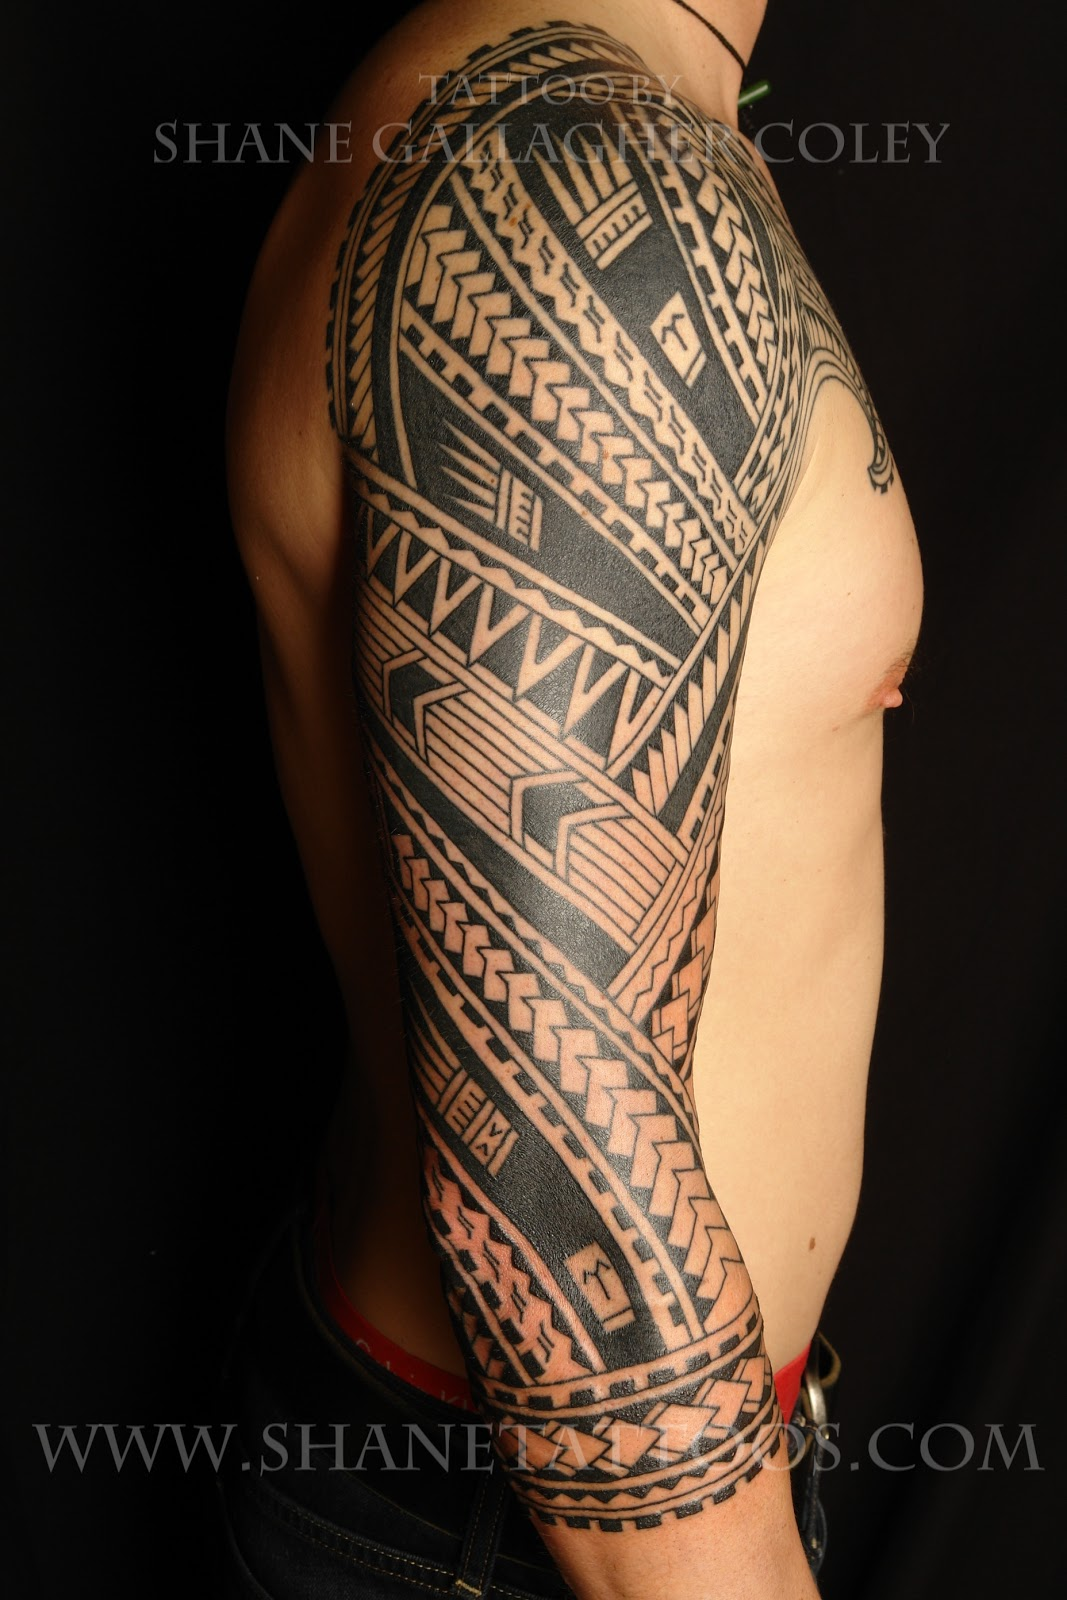 shane tattoos polynesian sleeve tattoo. Black Bedroom Furniture Sets. Home Design Ideas